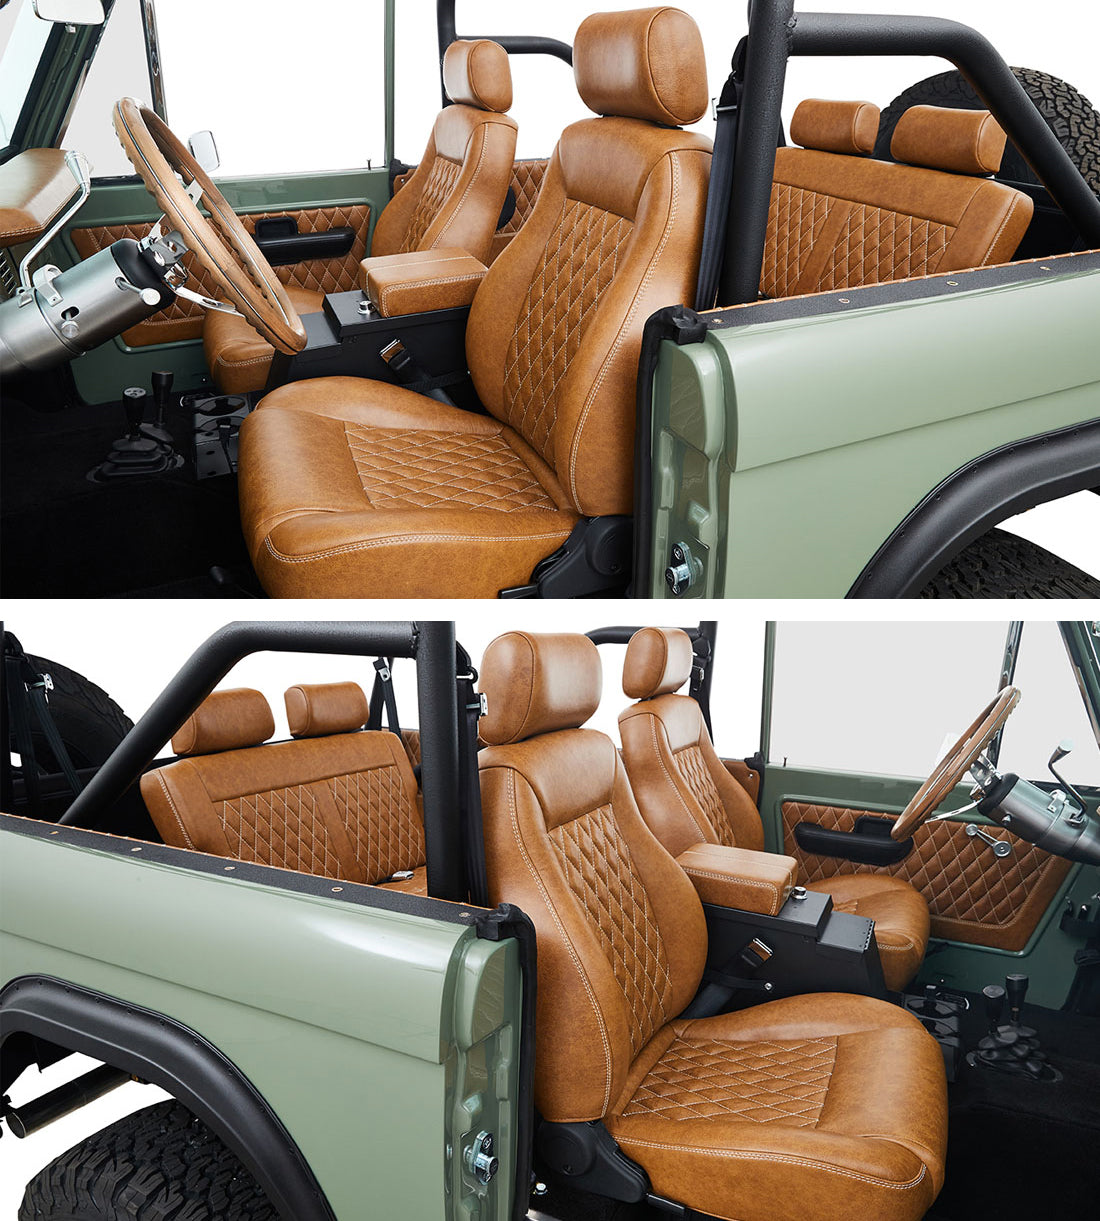 Classic Ford Broncos Relicate Distressed Leather Interior with Diamond Stitched Seats